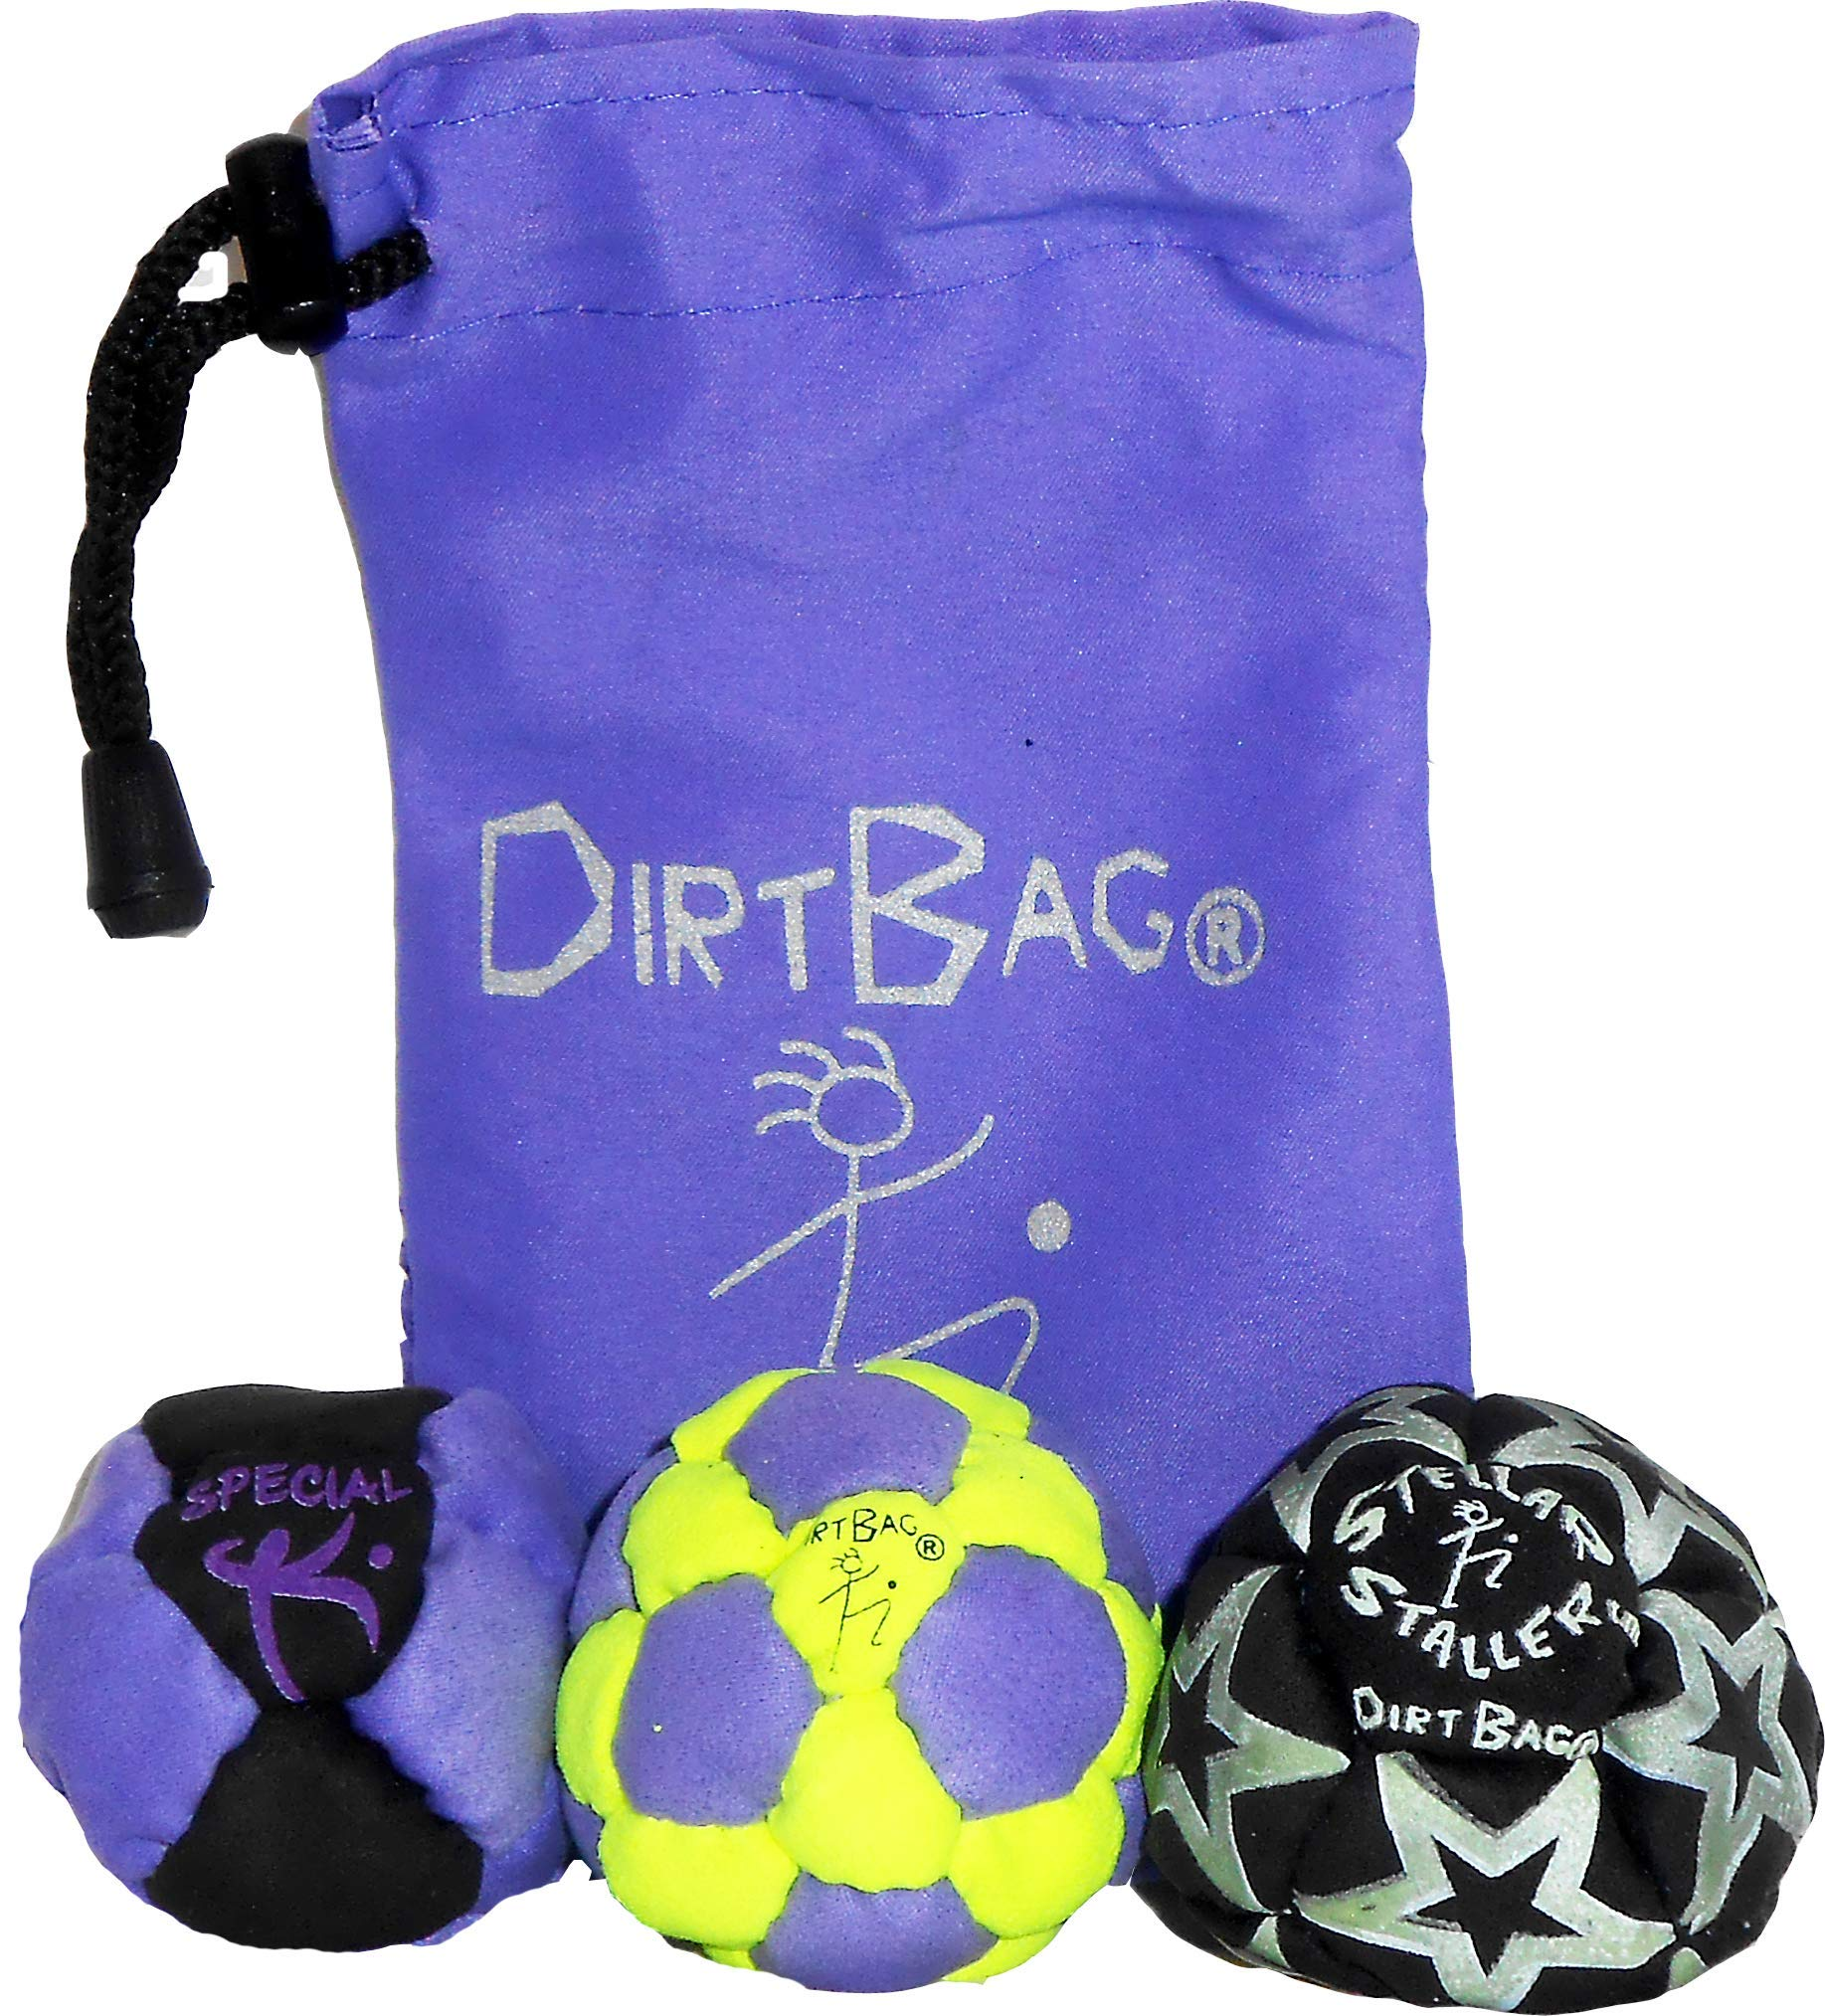 DirtBag Medley Footbag Hacky Sack 3 Pack with Pouch